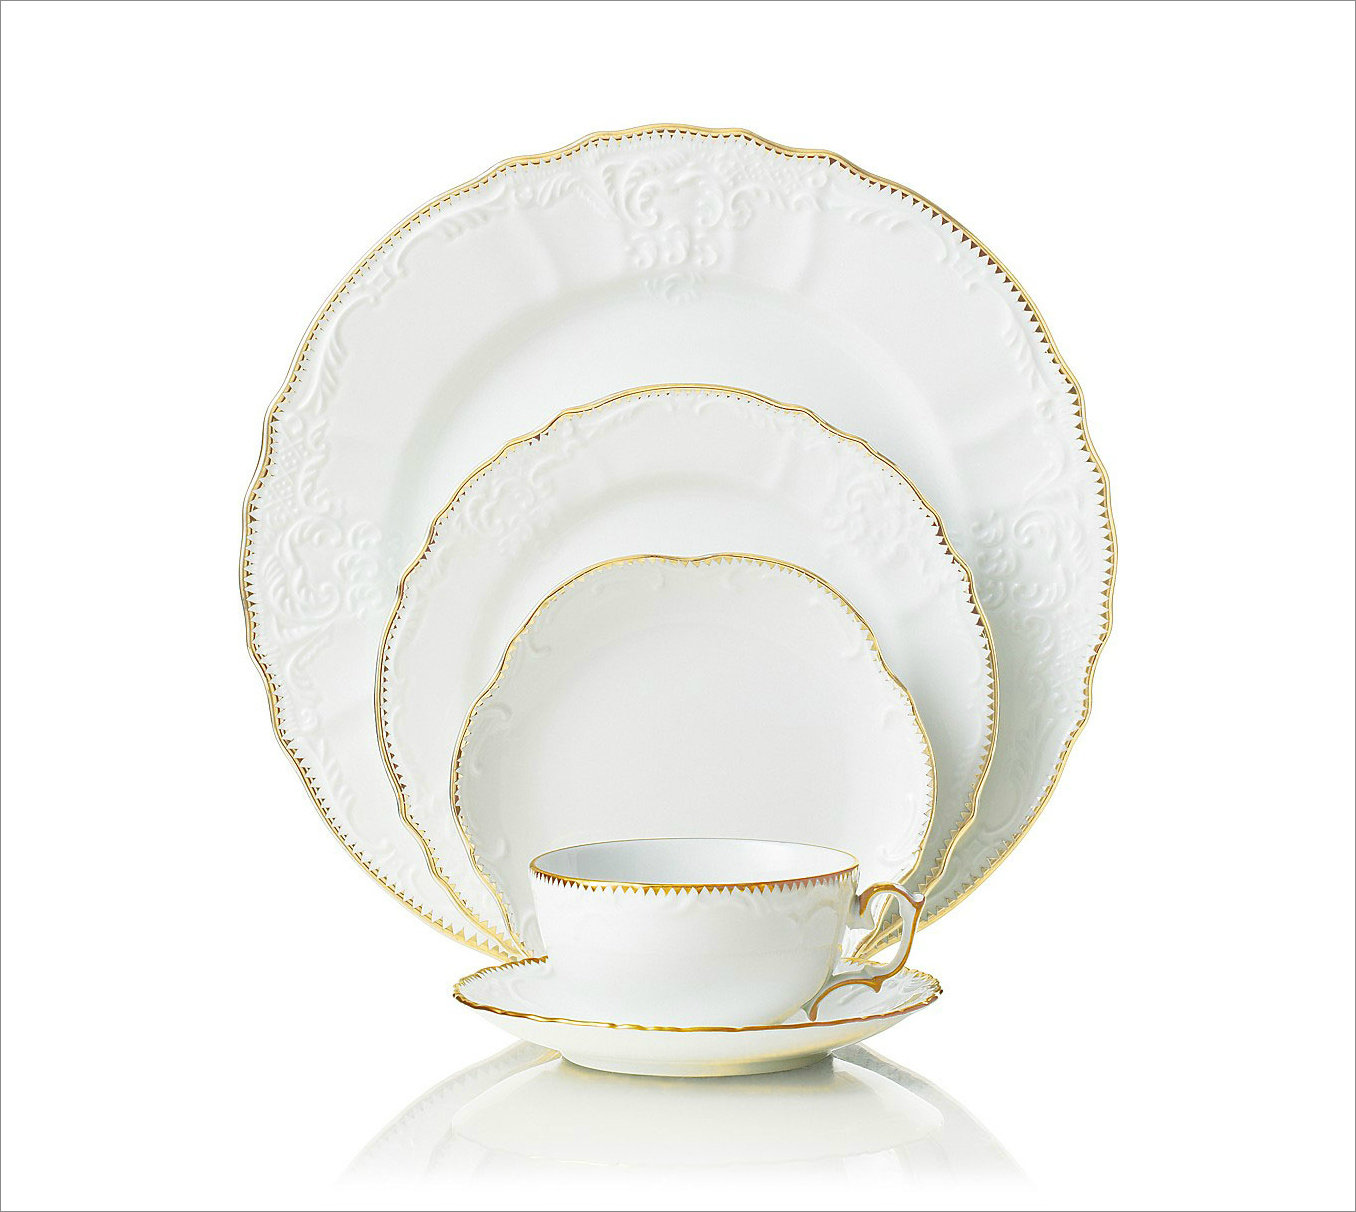 Simply Anna dinnerware, $43-70 by Anna Weatherly; gearys.com